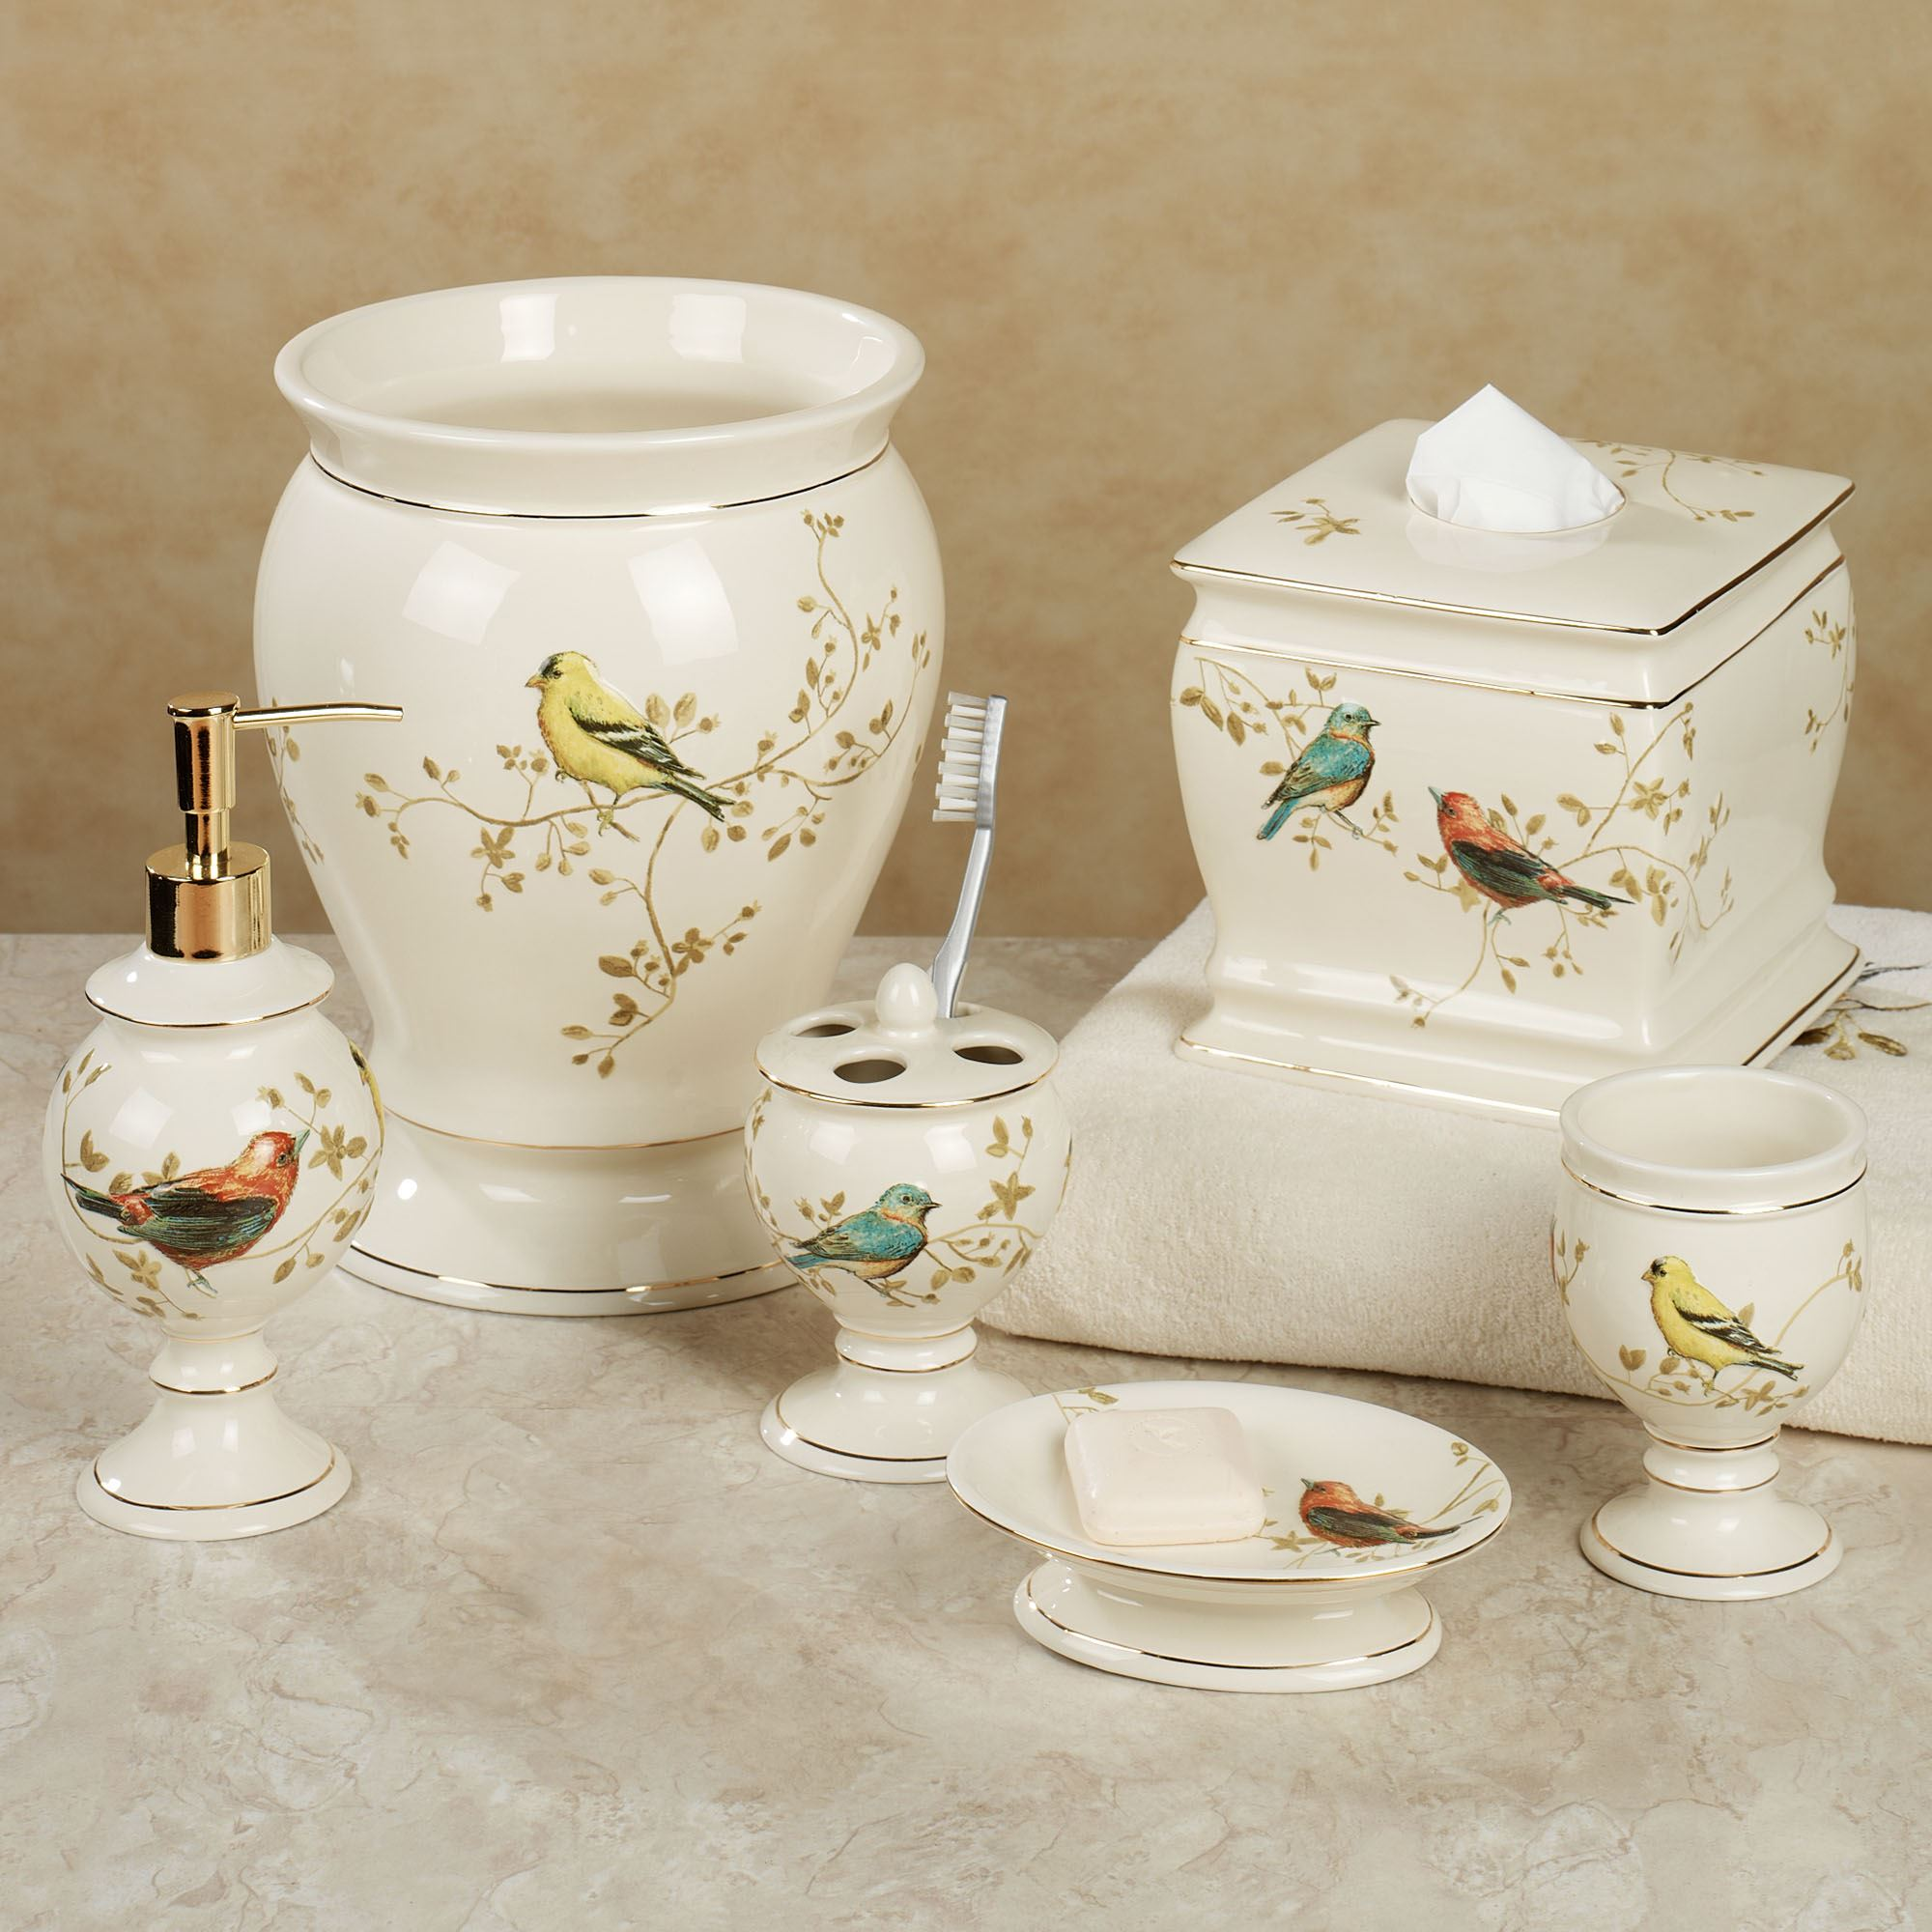 Gilded Bird Ceramic Bath Accessories